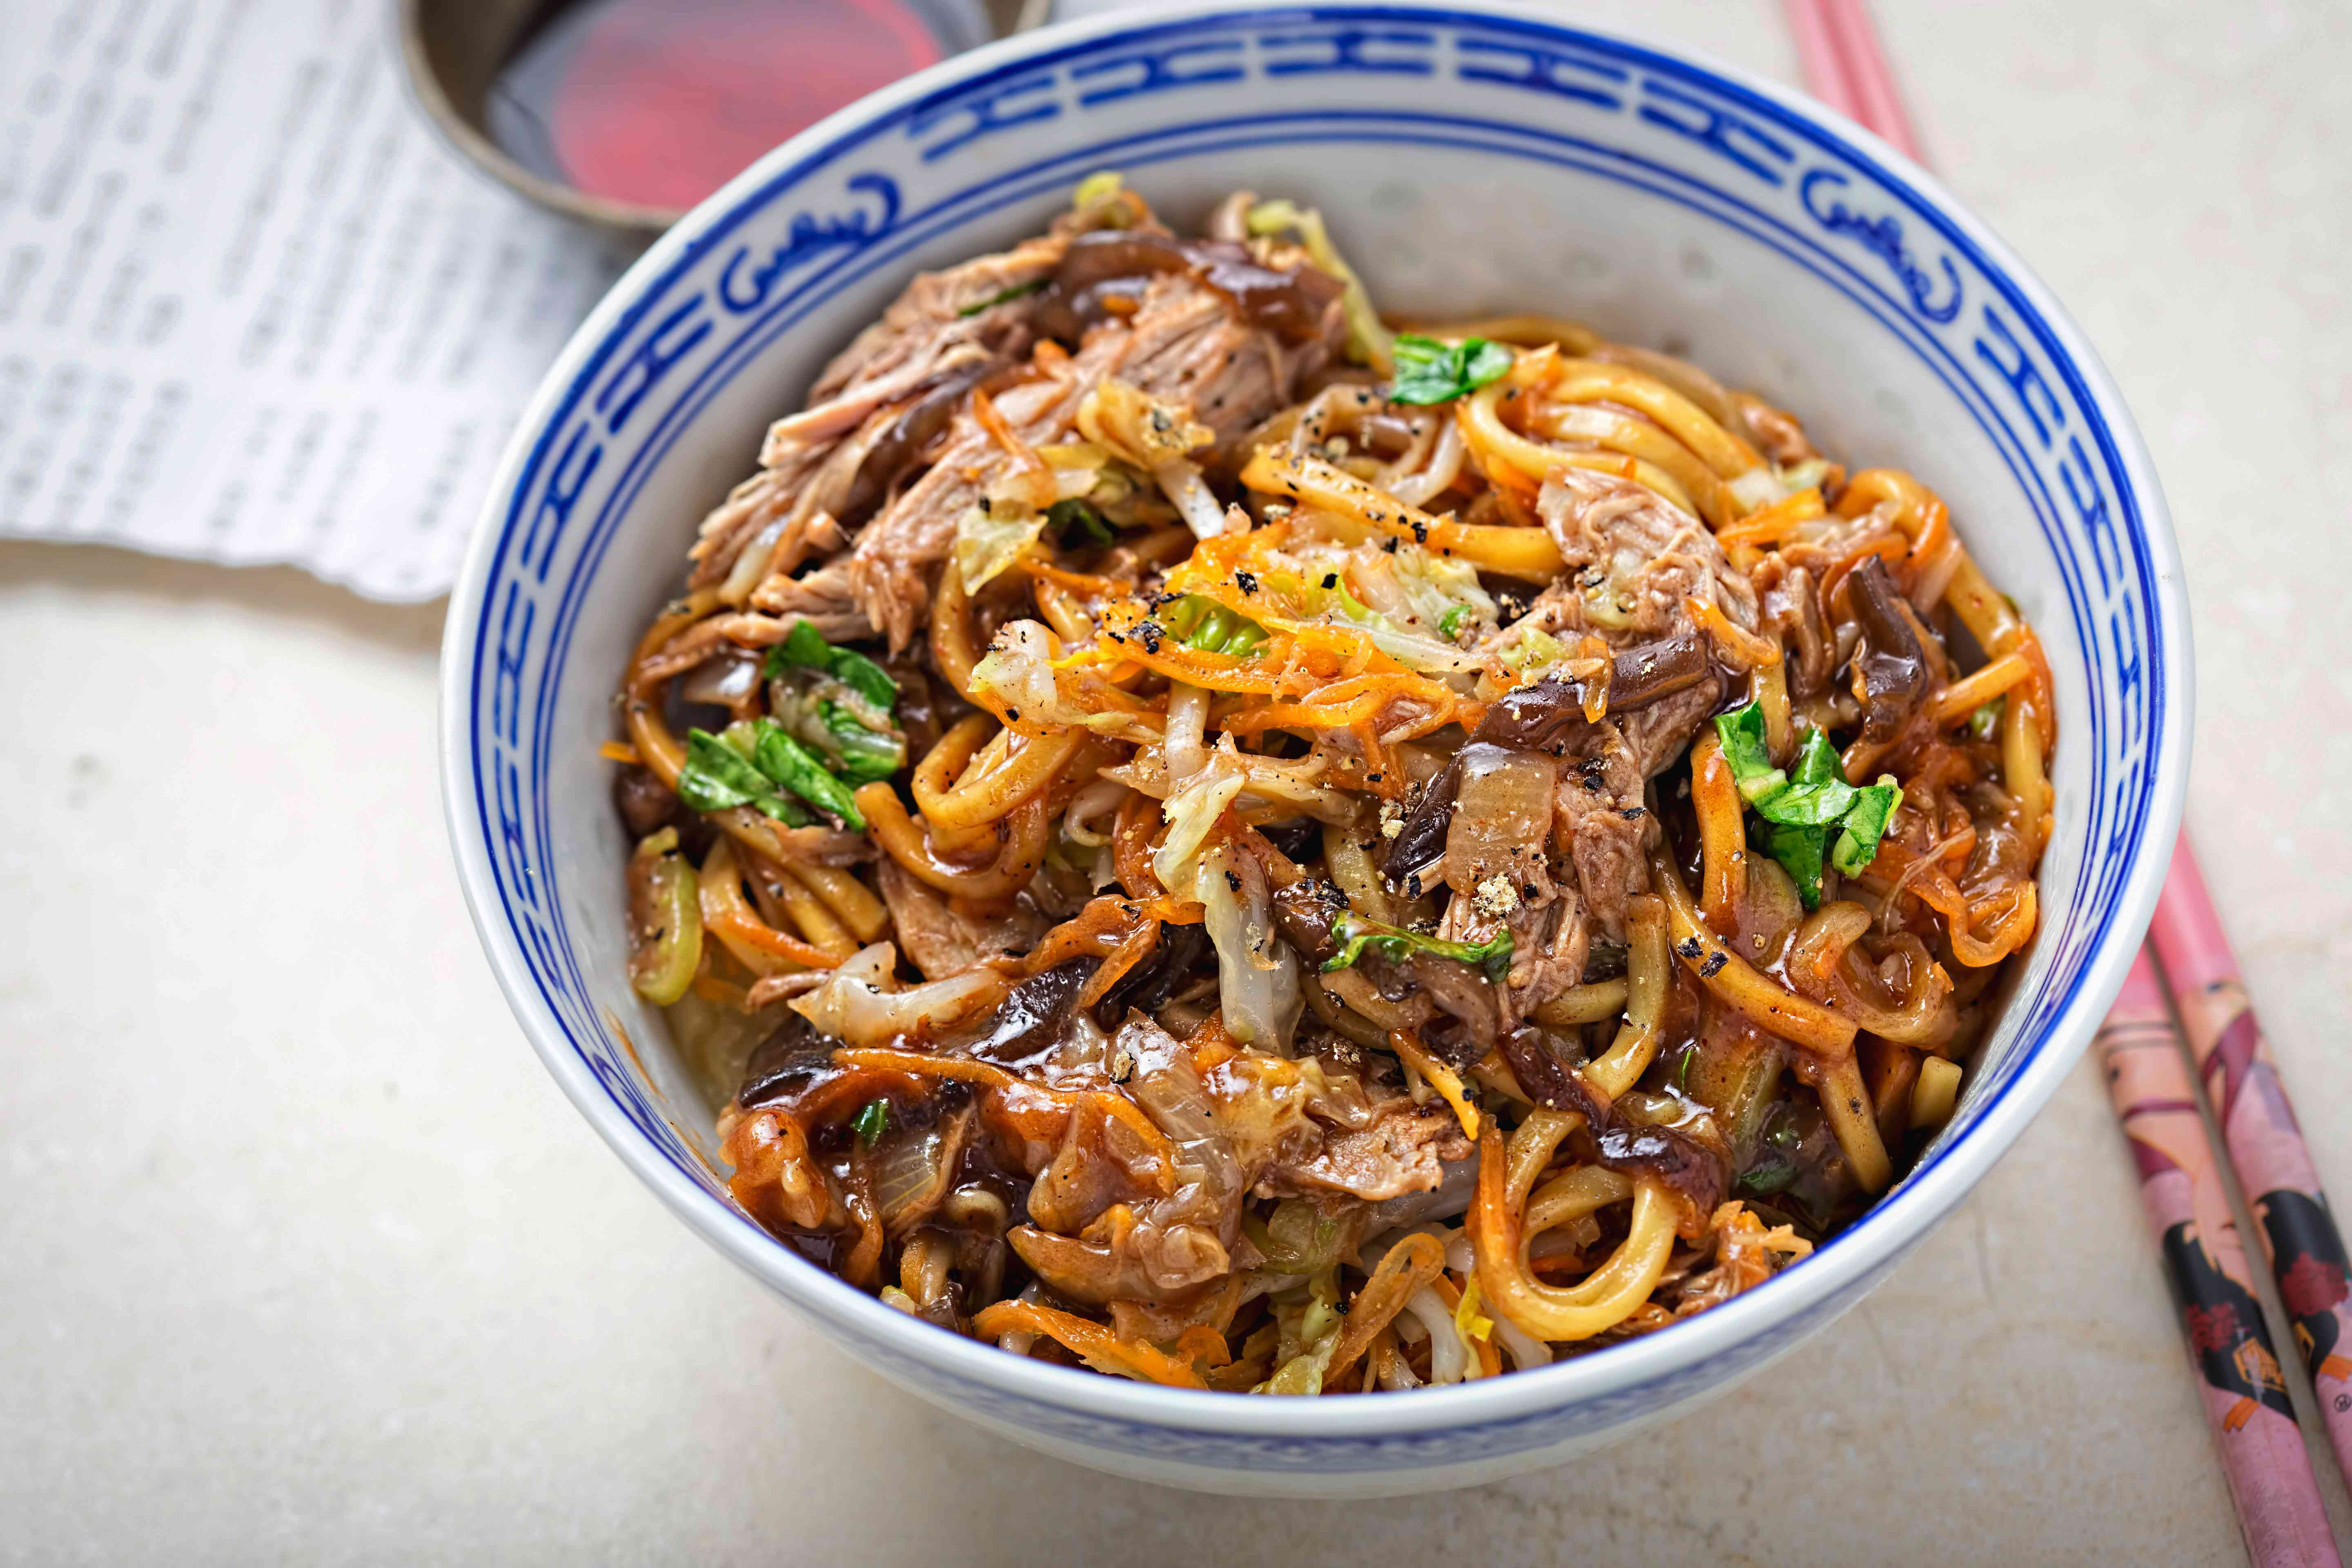 Hoisin duck noodles. Egg noodles with strips slow roasted duck in hoisin sauce with oak choi.